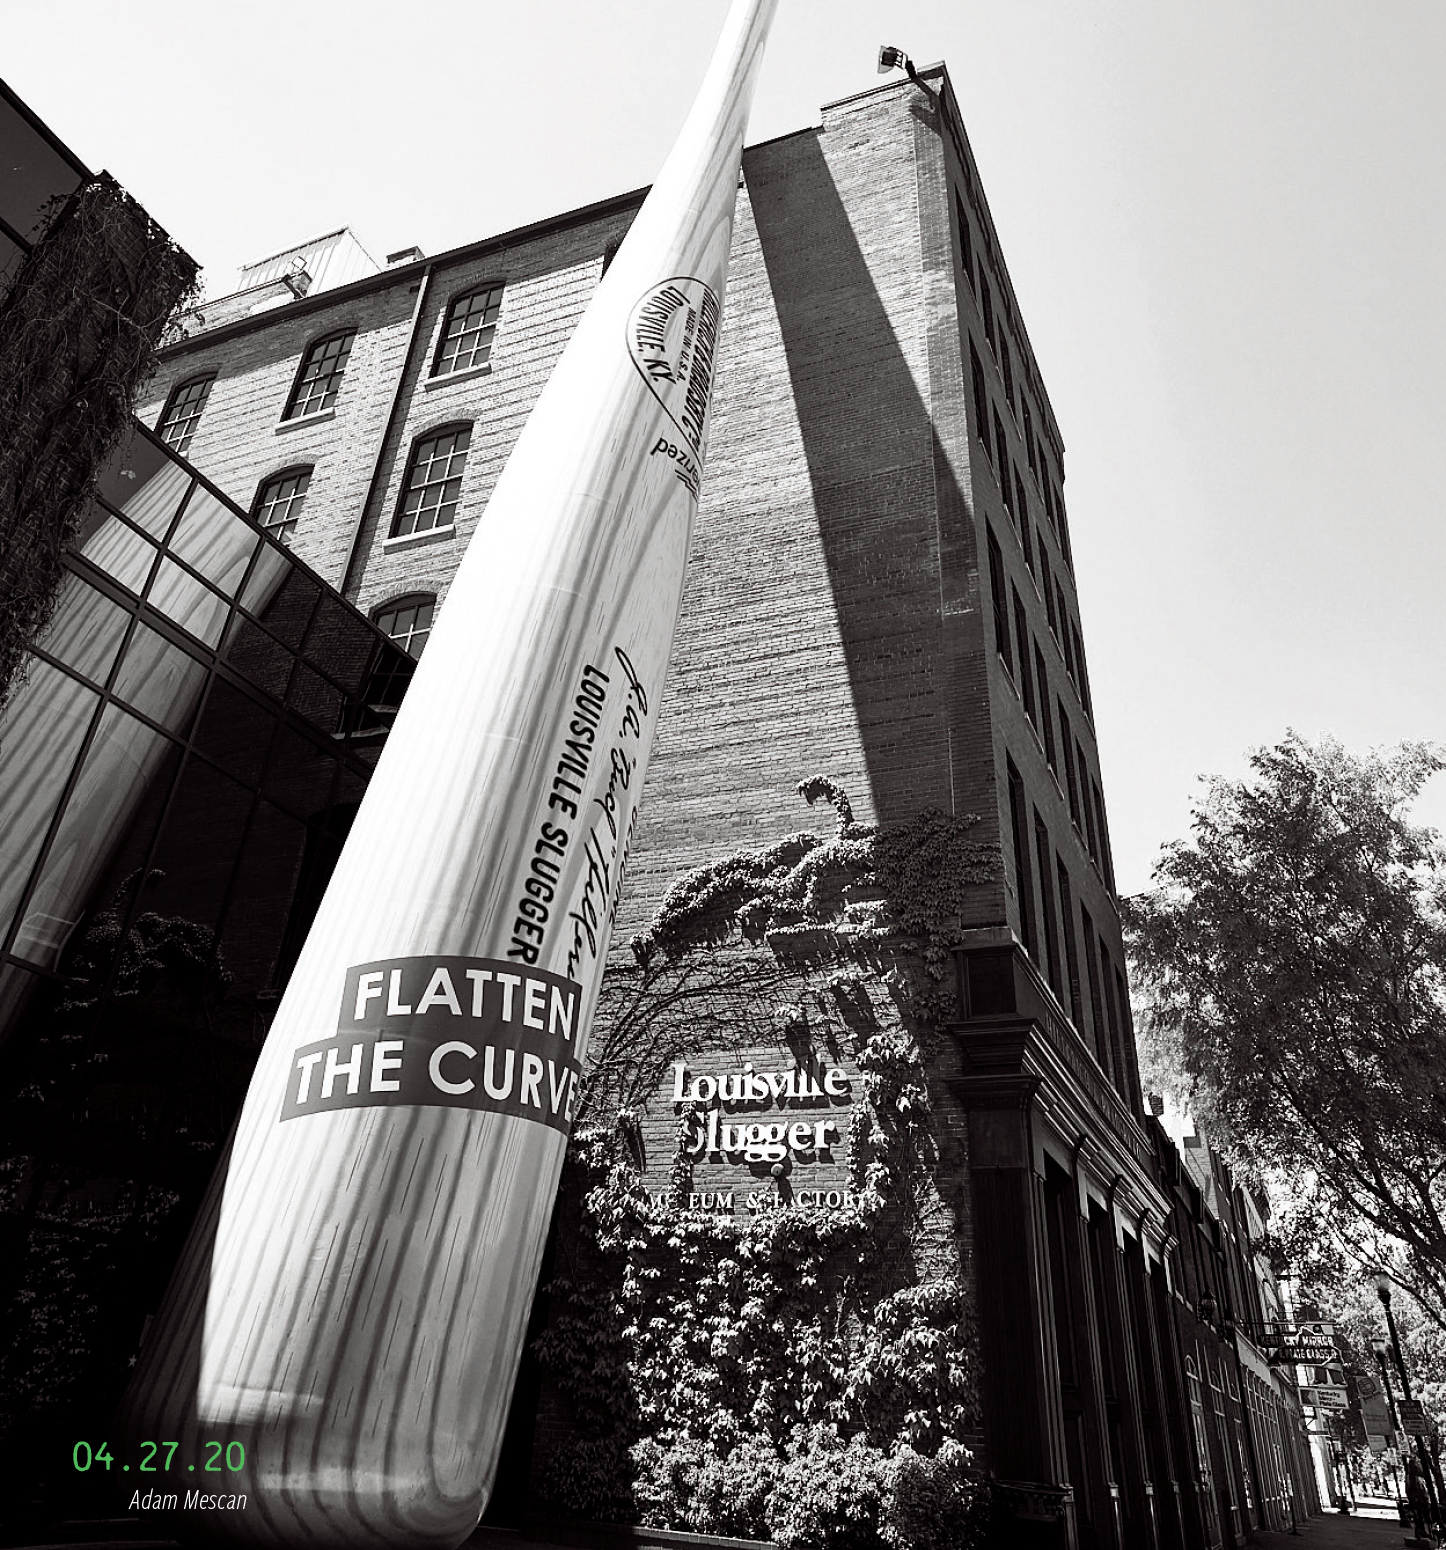 """The bat outside Louisville Slugger Museum, with a sign reading, """"Flatten the curve."""" 04.27.2020, by Adam Mescan"""